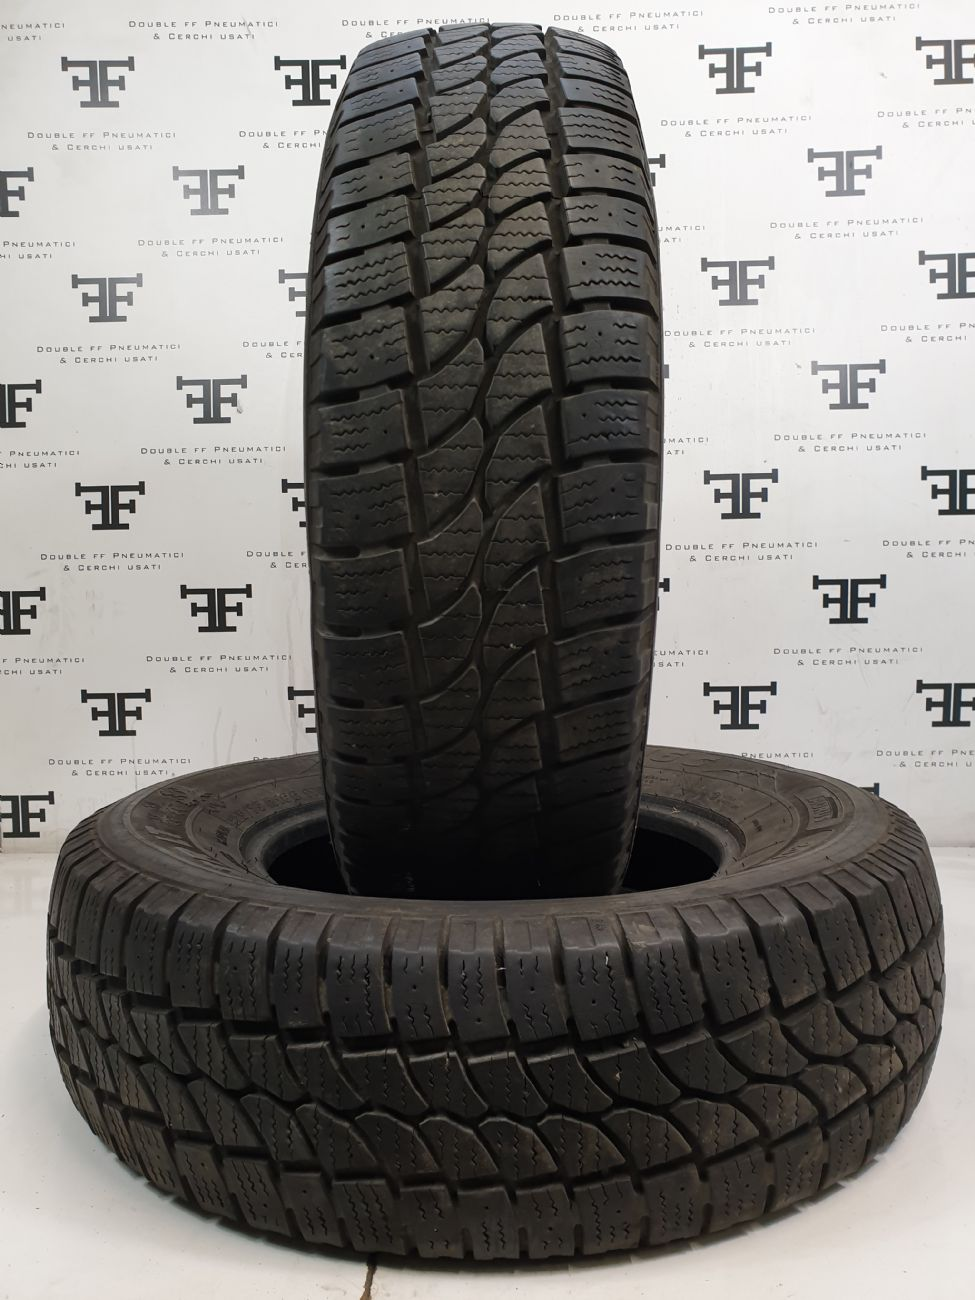 225/75 R16C 118/116  R TAURUS (MICHELIN) WINTER LT 201